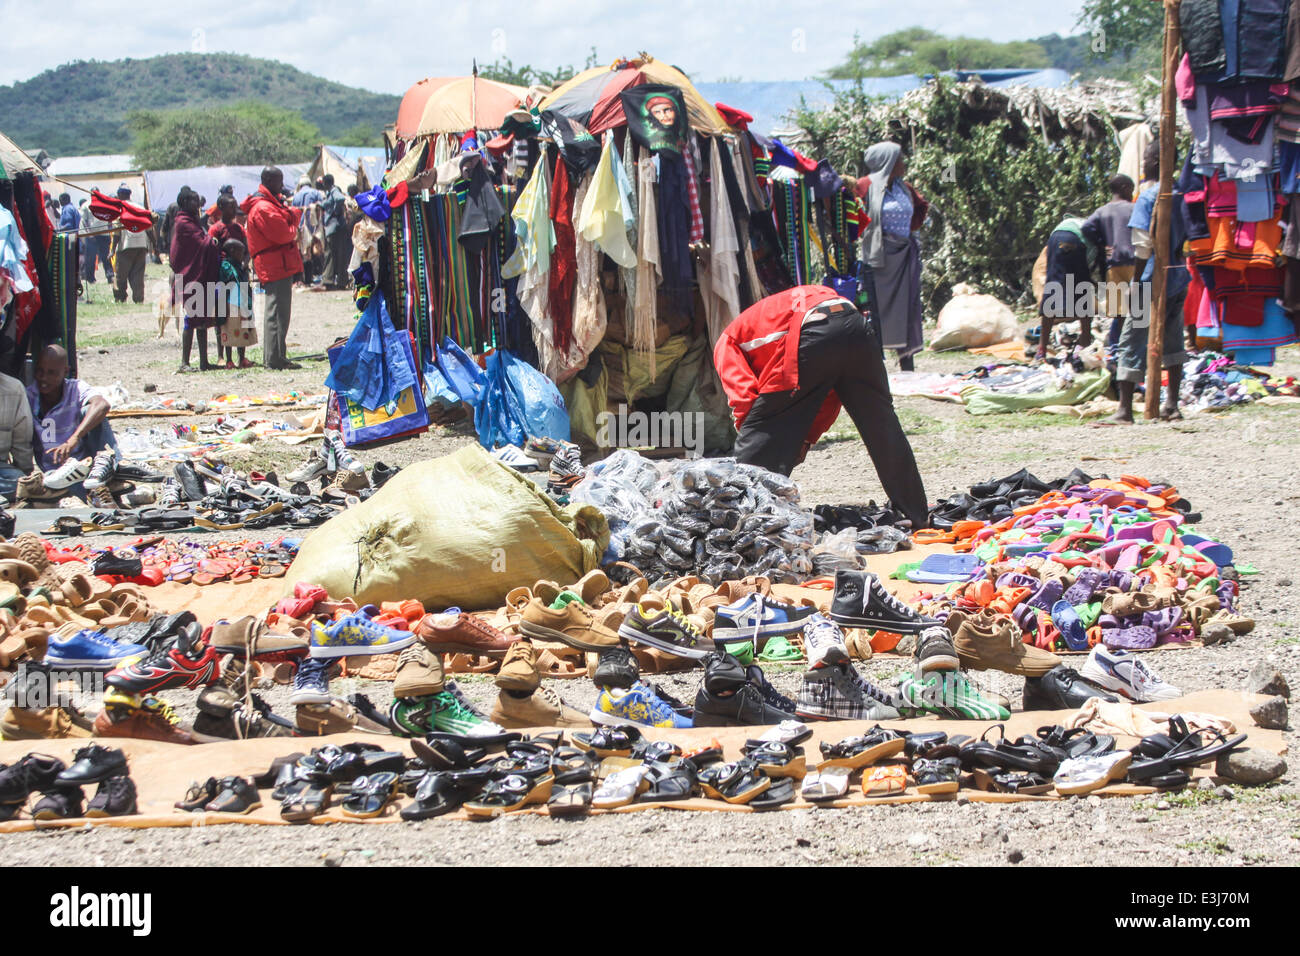 Africa, Tanzania, Frontier Market. The goods are placed on a blanket on the ground - Stock Image